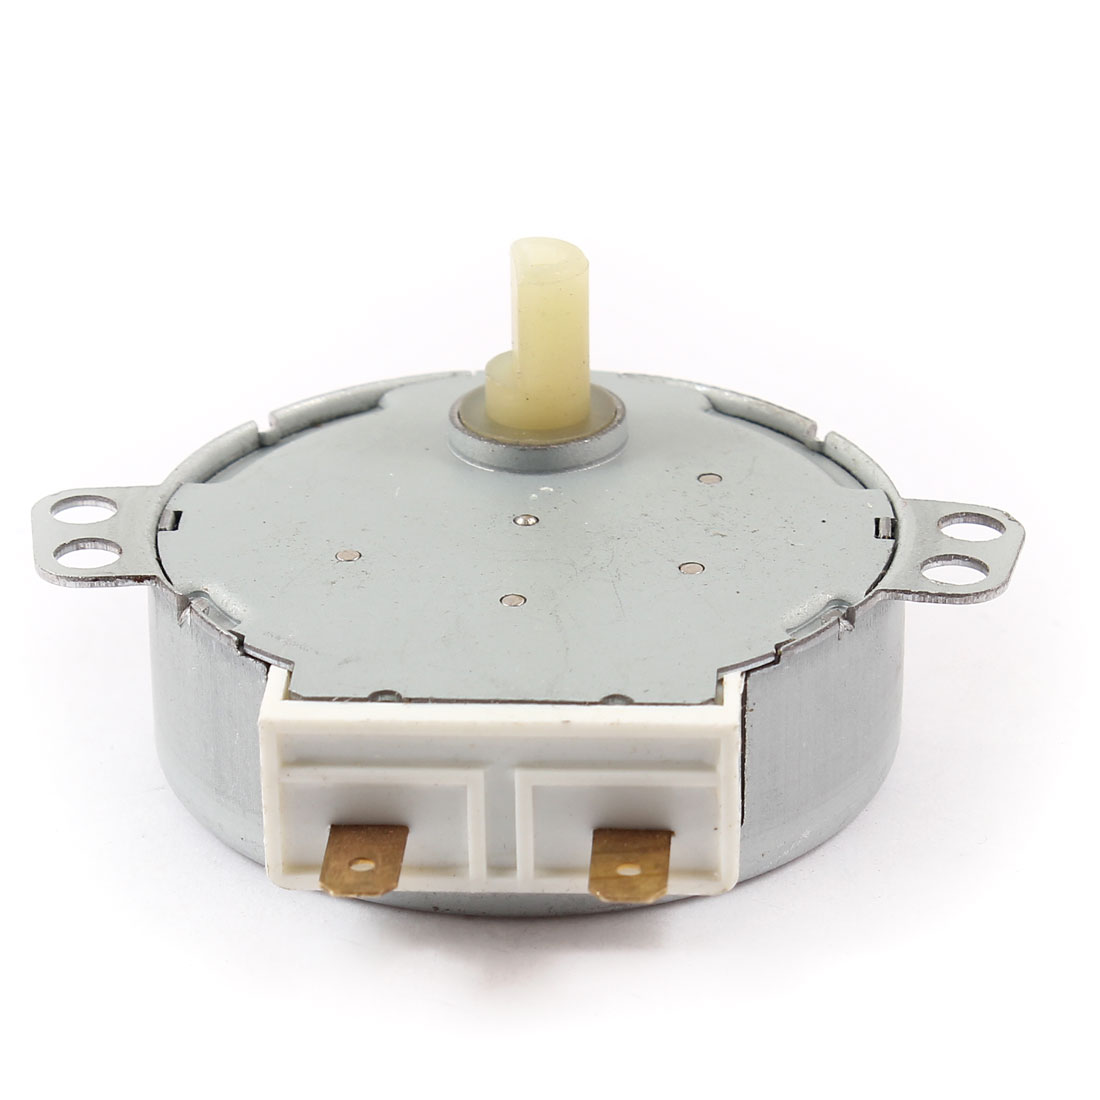 Microwave Turntable Synchronous Motor CW/CCW 3.5/4W 4/5RPM AC30V